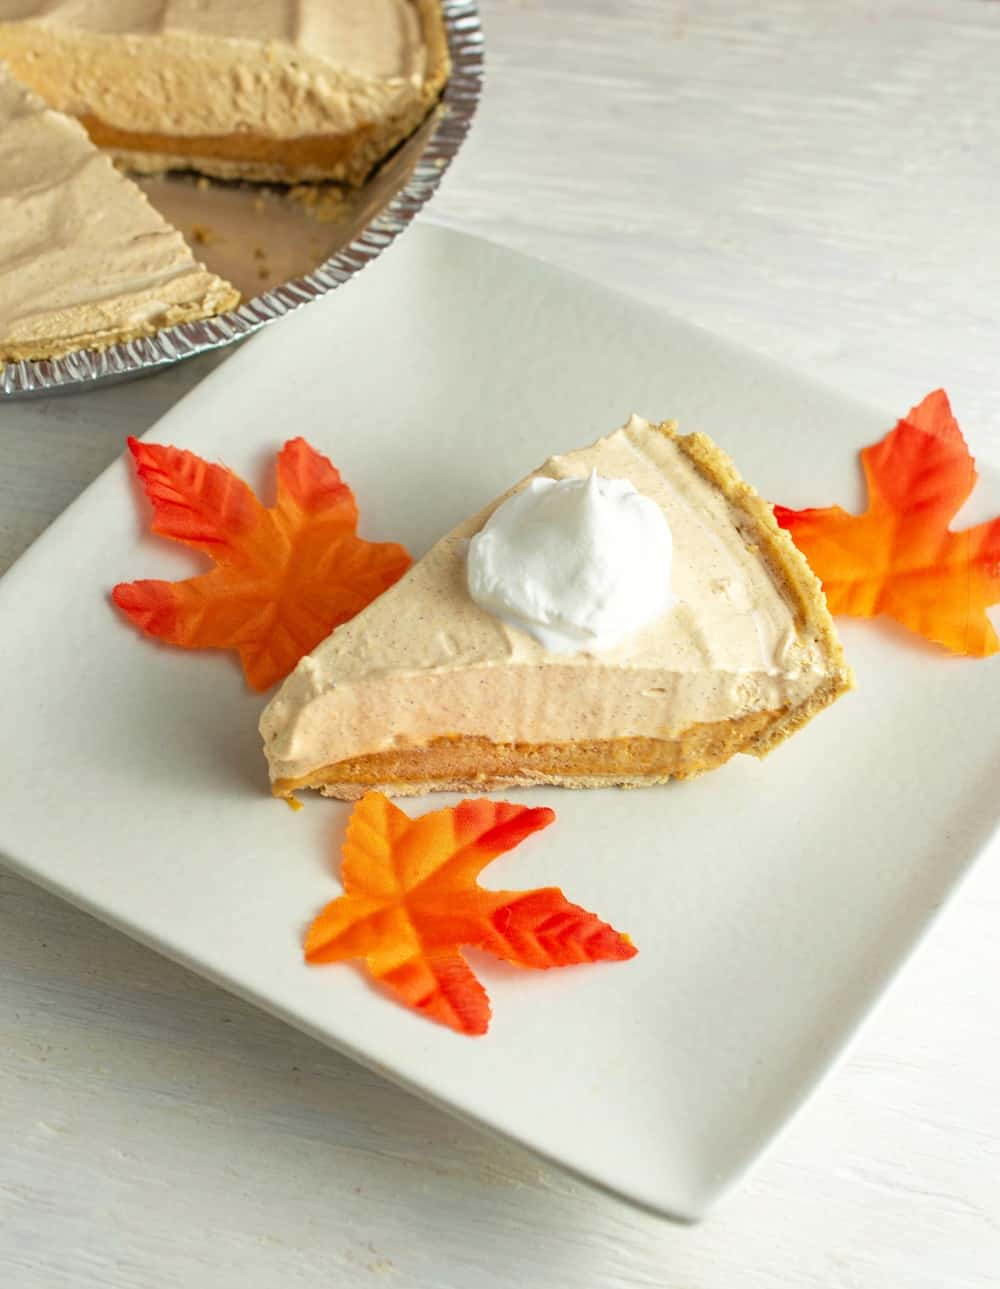 A slice of pumpkin fluff pie on a white plate